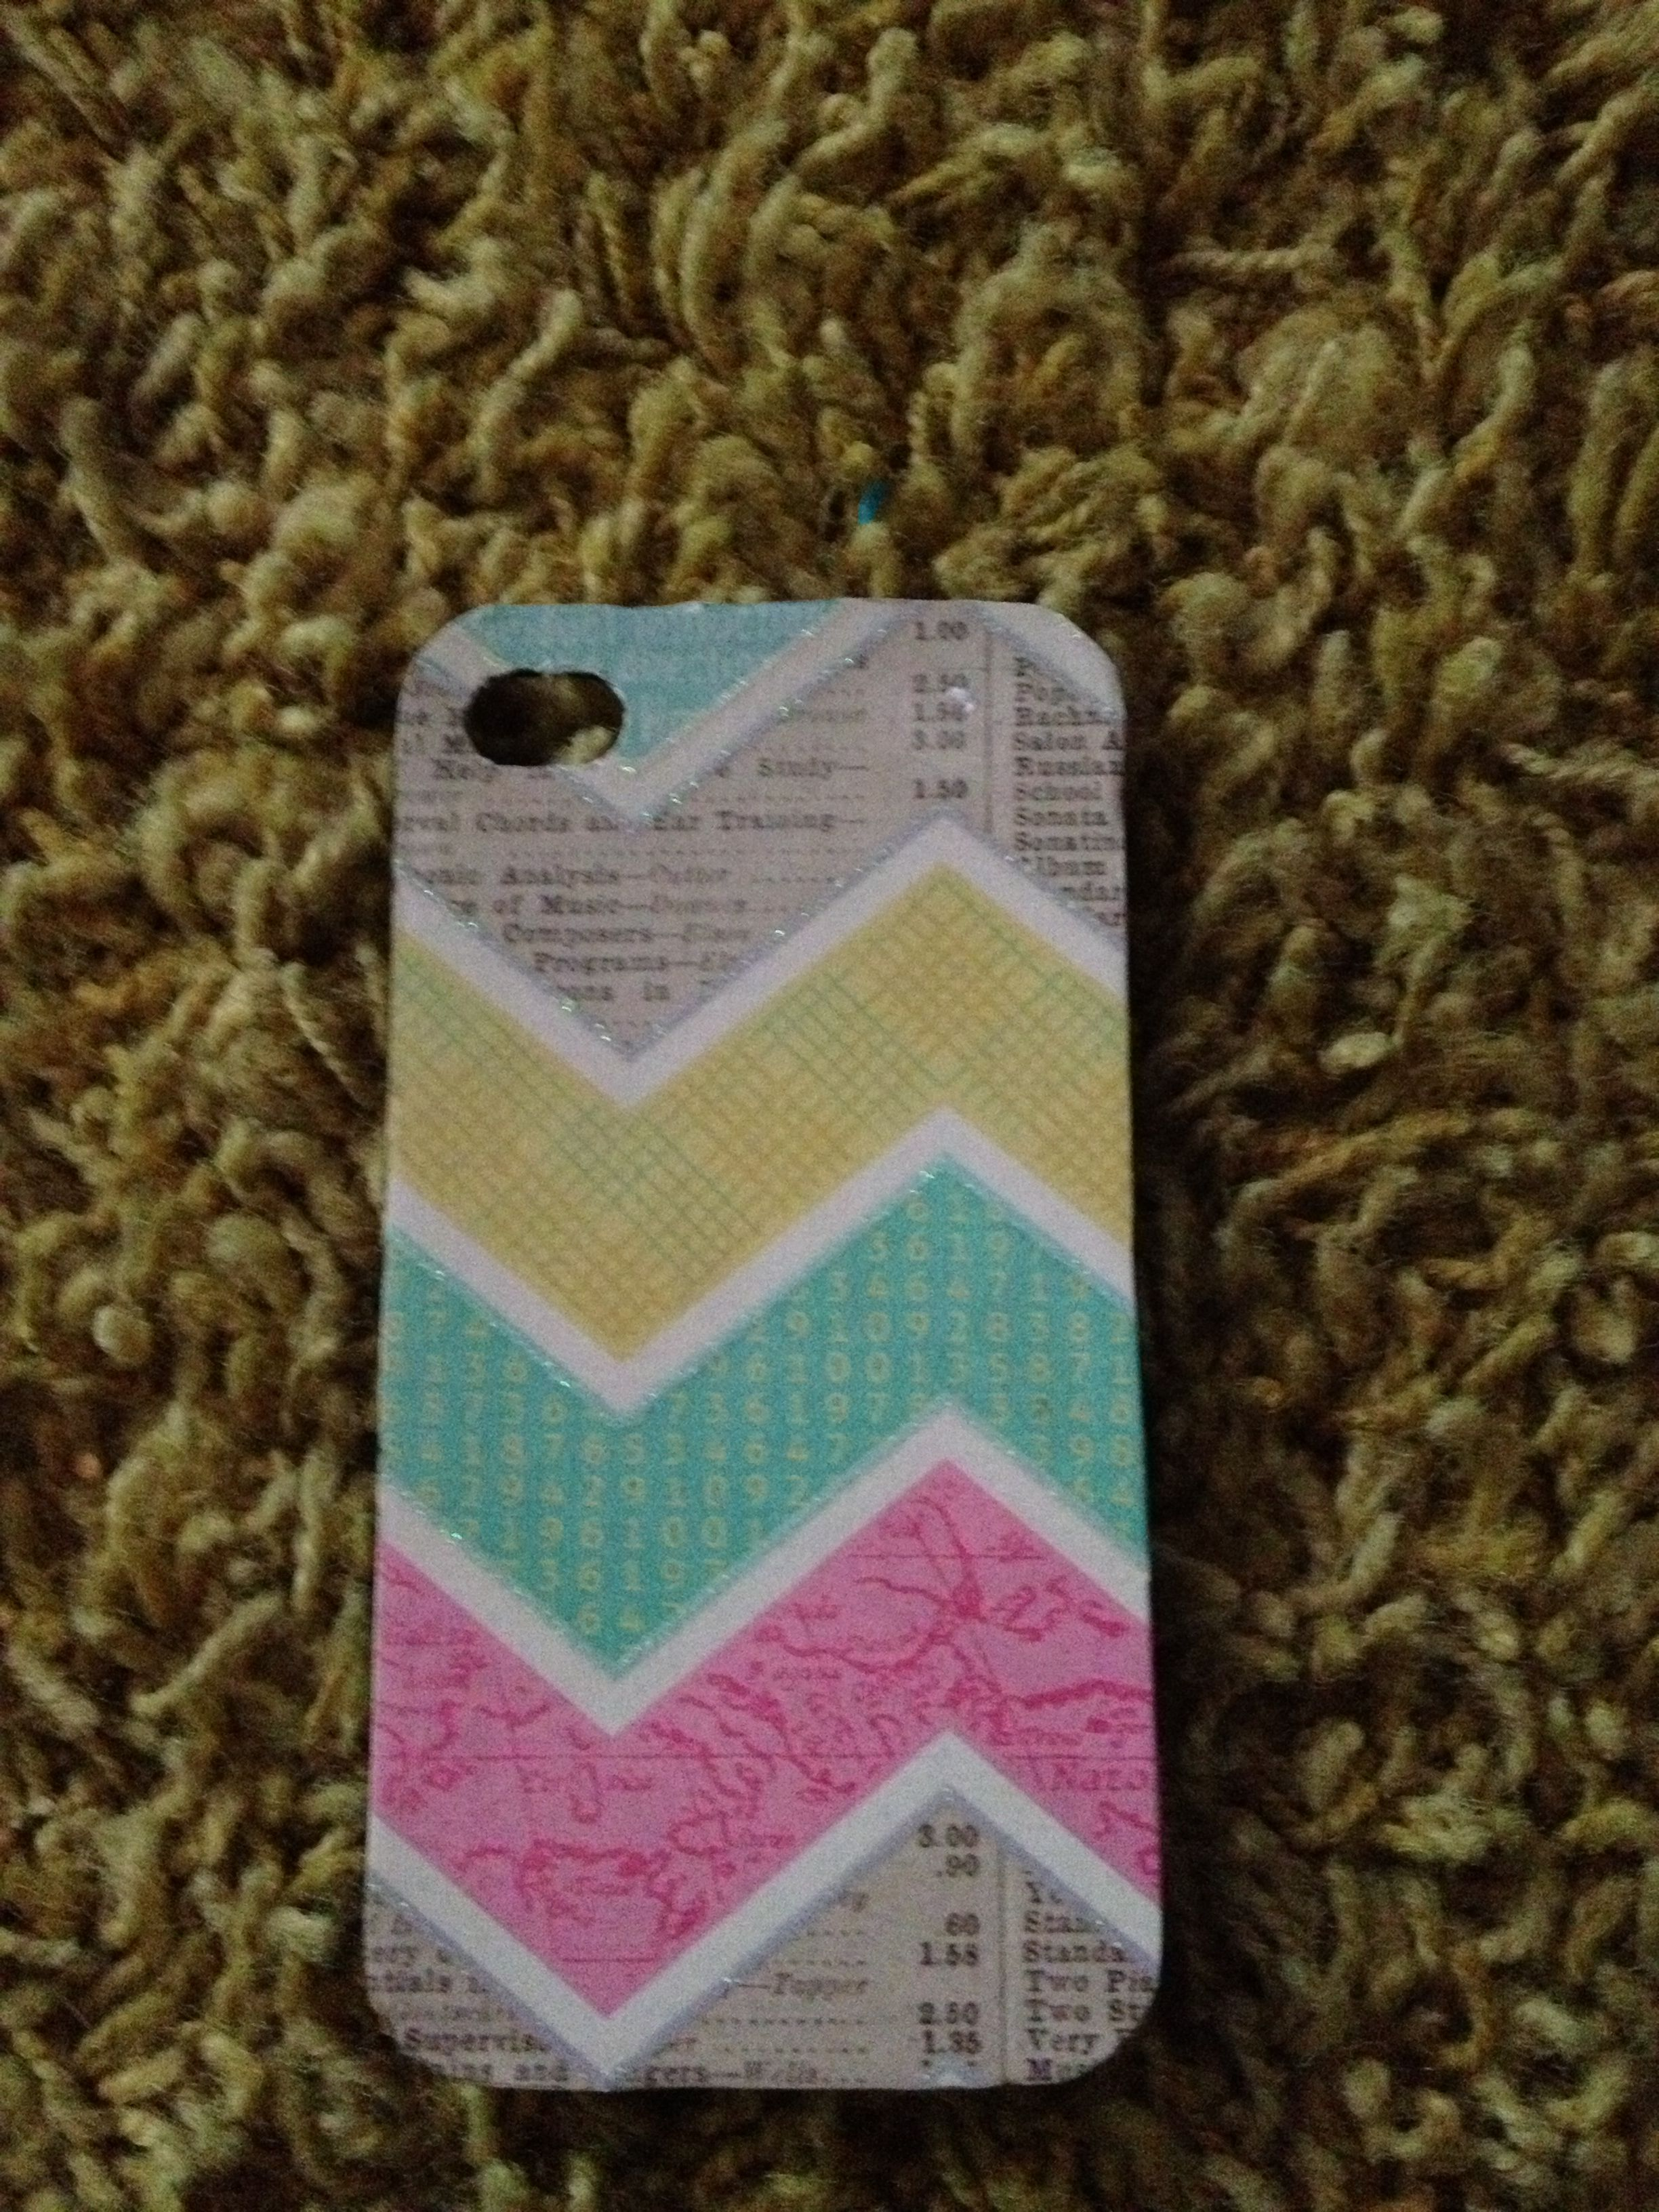 Scrapbook paper case - Took An Old Cell Phone Case And Used Mod Podge And Scrapbook Paper To Spruce It